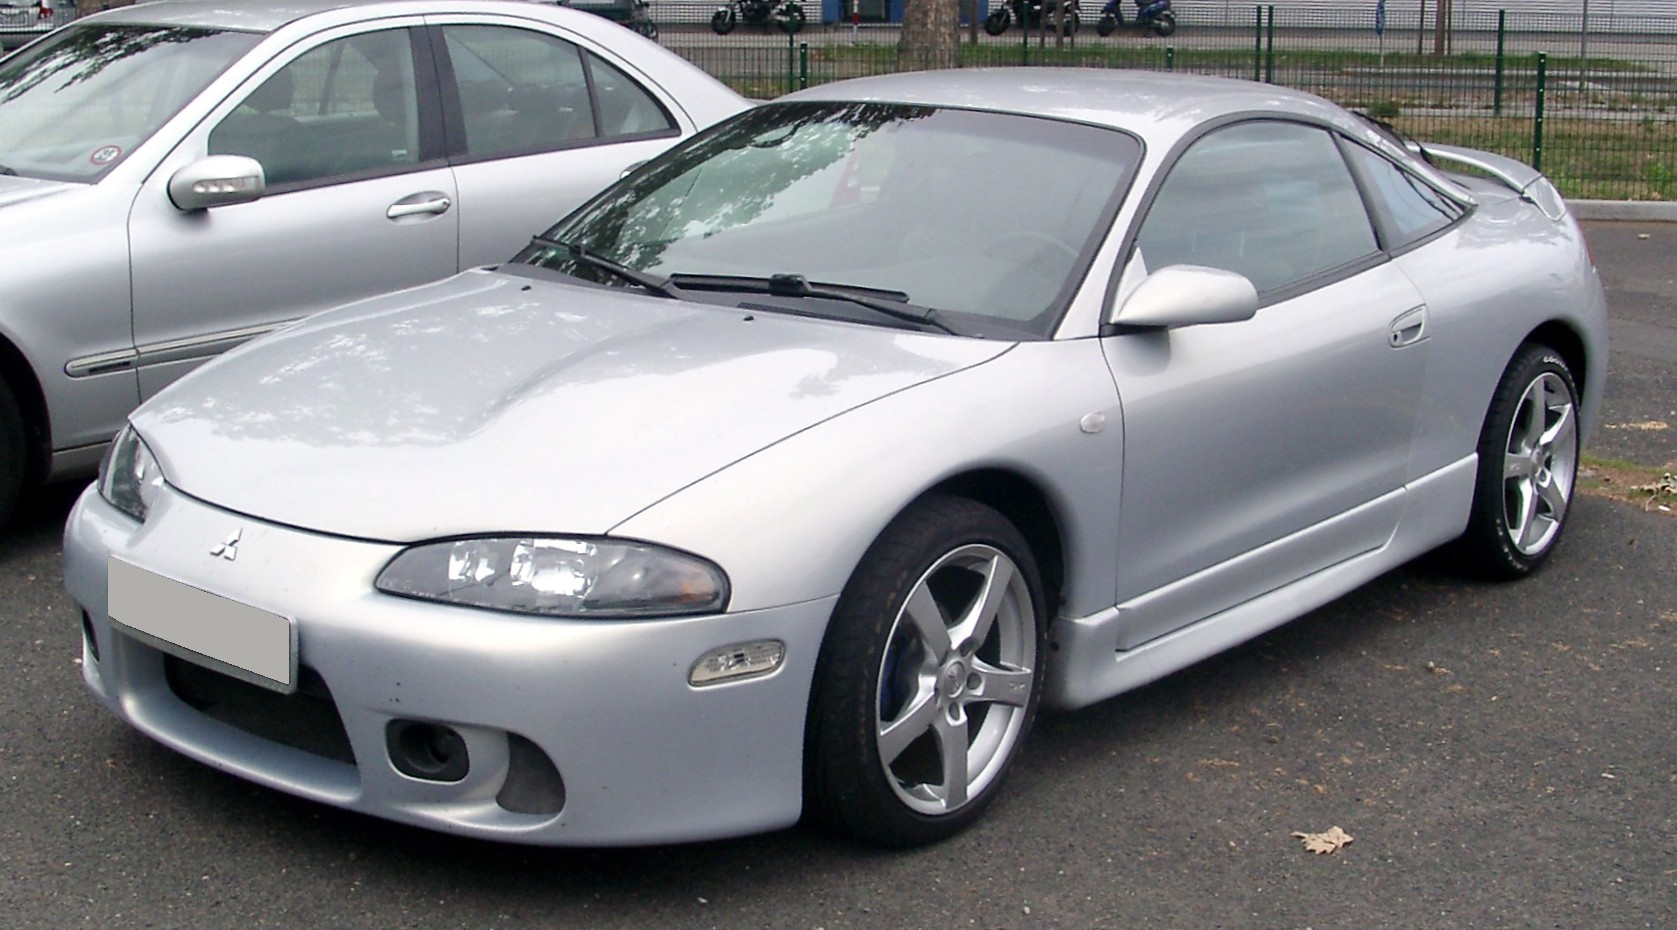 Mitsubishi Eclipse front photo Cars and Pictures Wallpapers Download